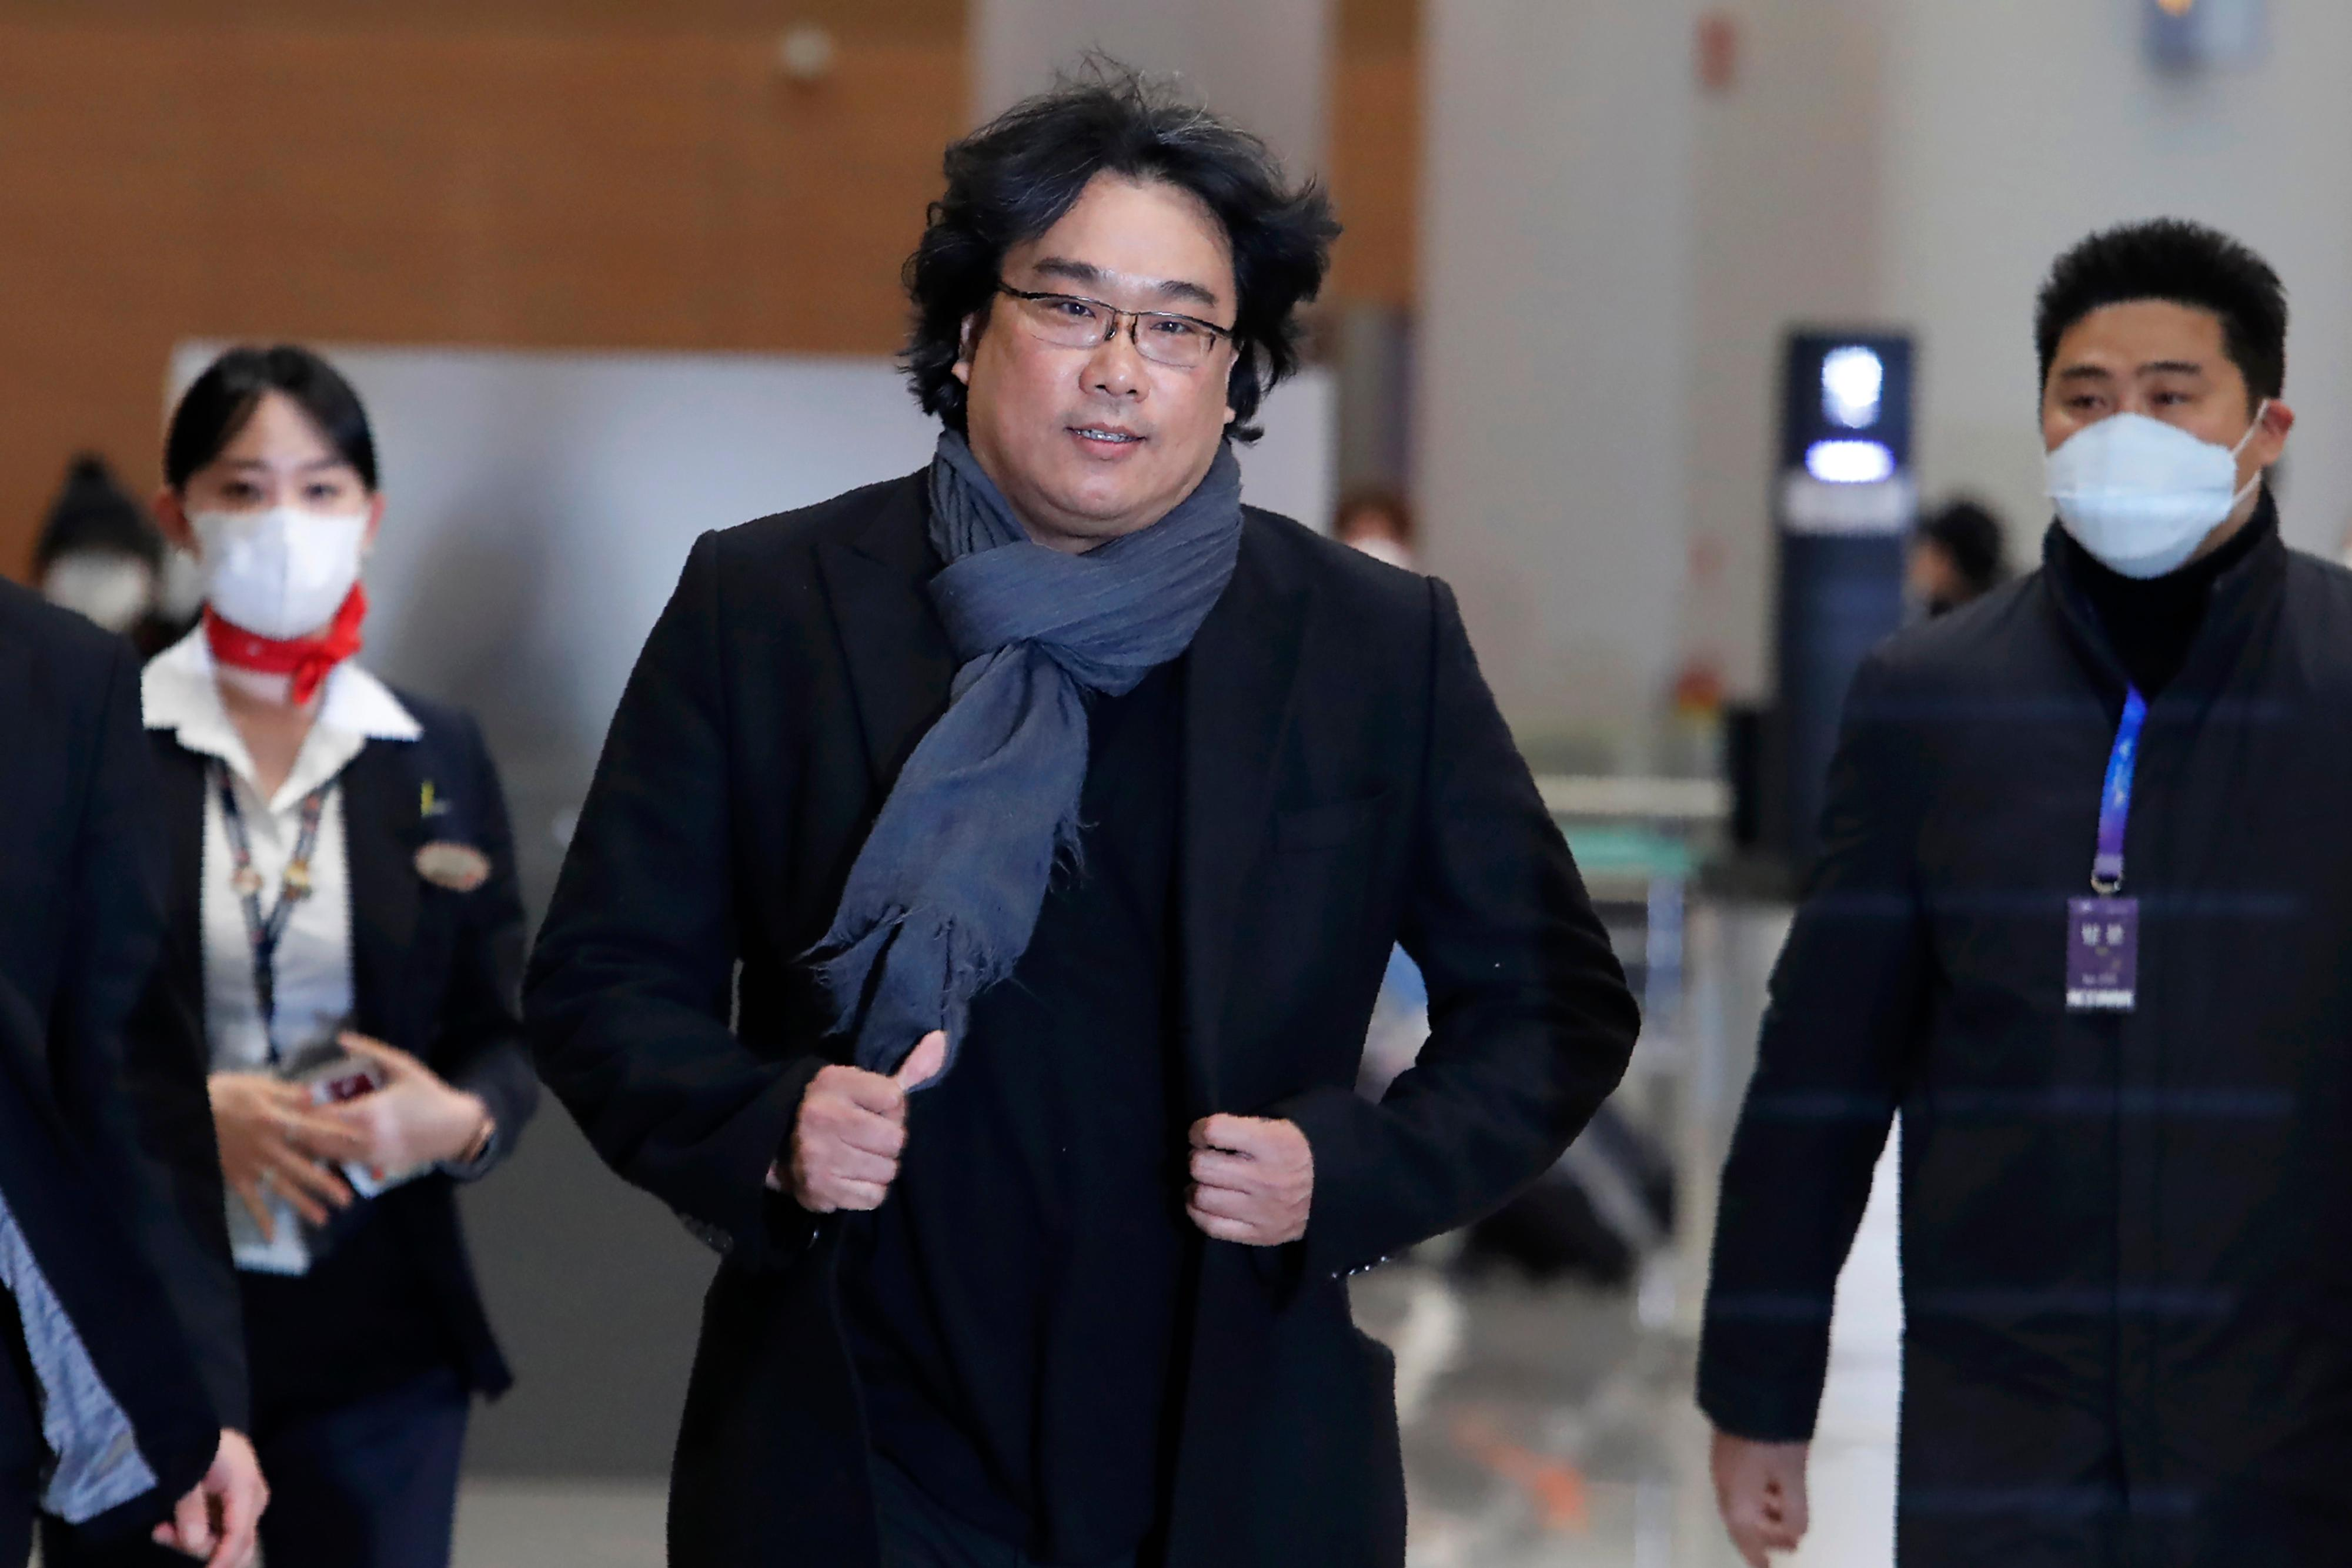 "South Korean director Bong Joon-ho arrives at the Incheon International Airport in Incheon, South Korea, Sunday, Feb. 16, 2020. South Koreans are reveling in writer-director Bong's dark comic thriller, ""Parasite,"" which won this year's Academy Awards for best film and best international feature. The movie itself, however, doesn't put the country in a particularly positive light. (AP Photo/Ahn Young-joon)"